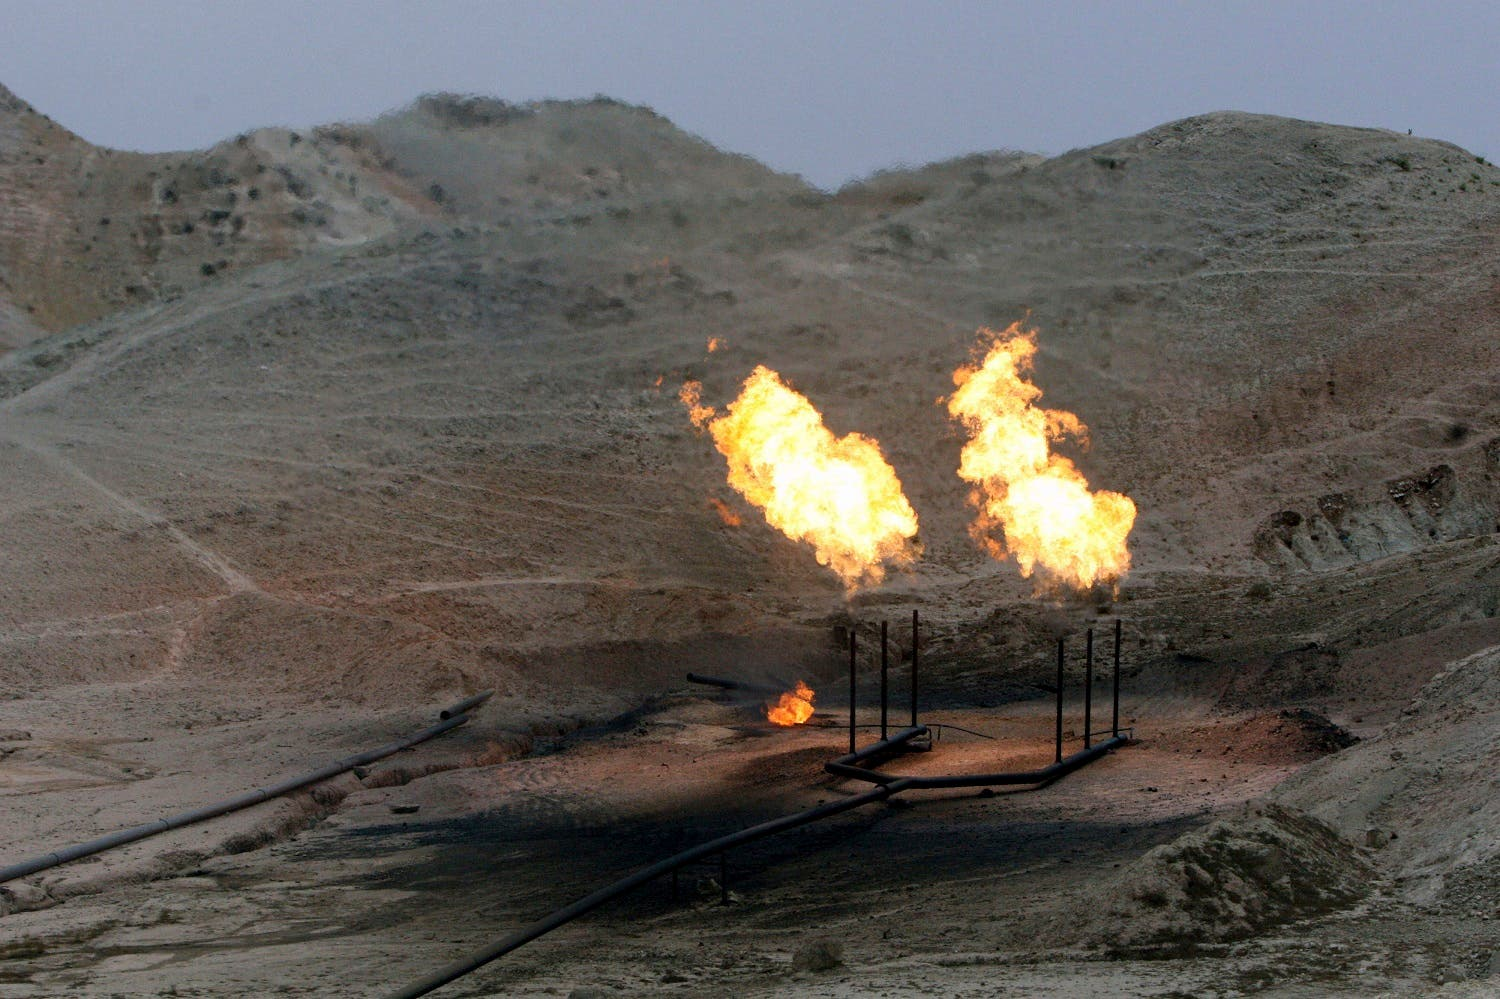 Gas flares burn near an oil well on the outskirts of Masjed Soleiman, a city where some of the first modern oil wells were discovered and drilled in the Middle East, in Khuzestan province. (File photo: AP)